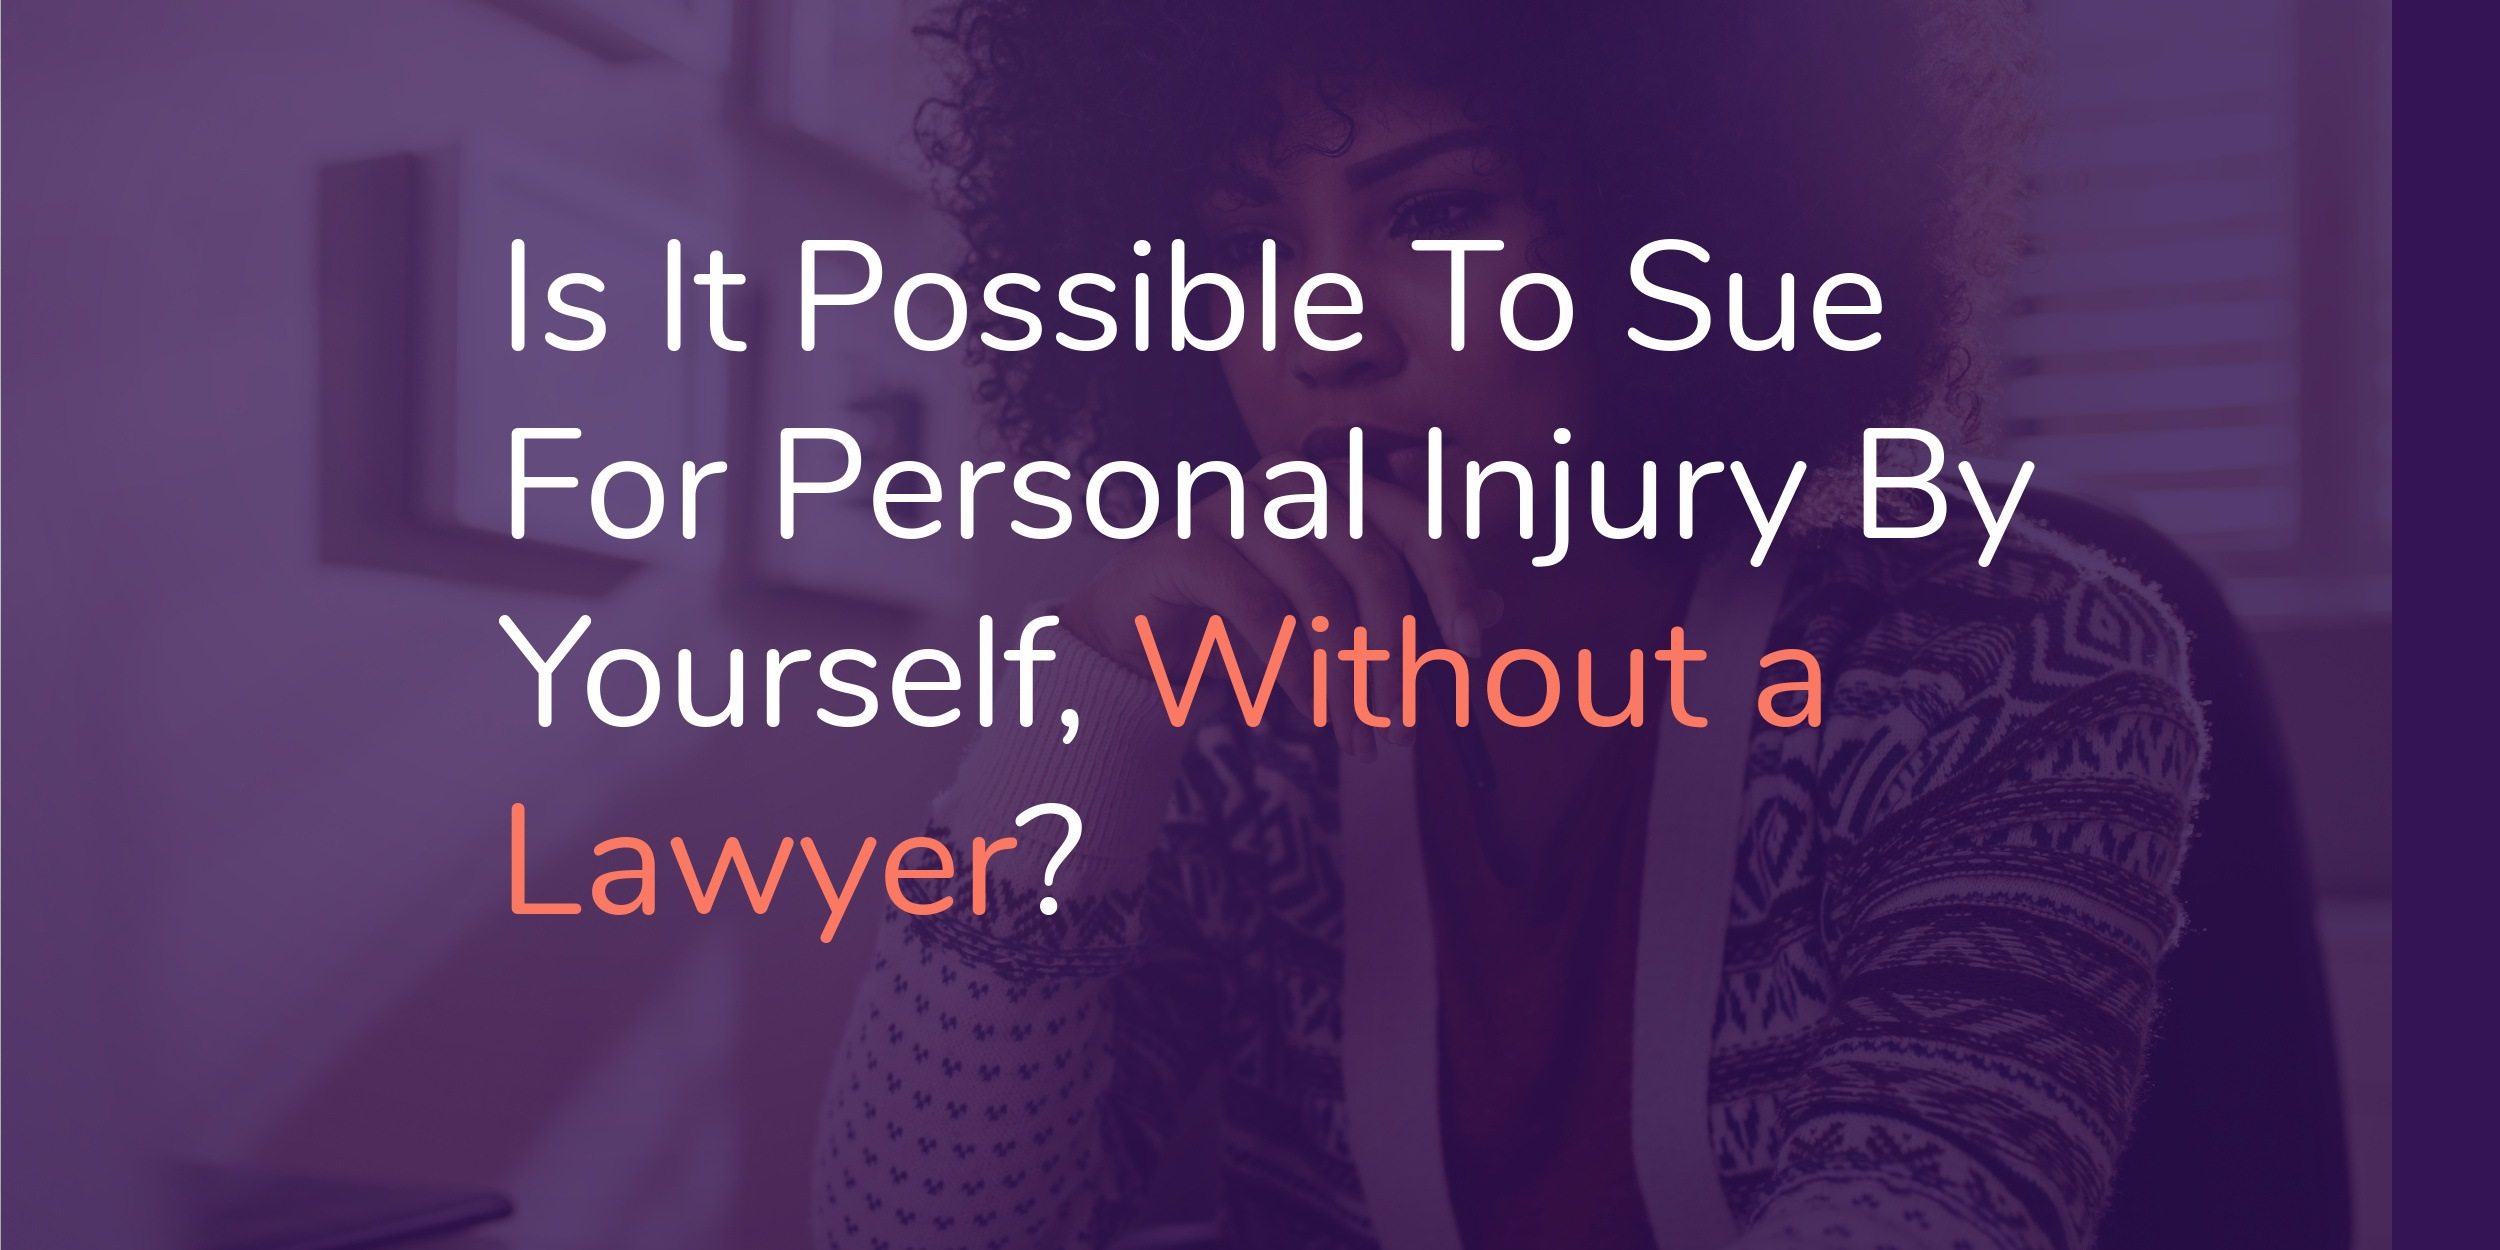 Suing for Personal Injury by Yourself